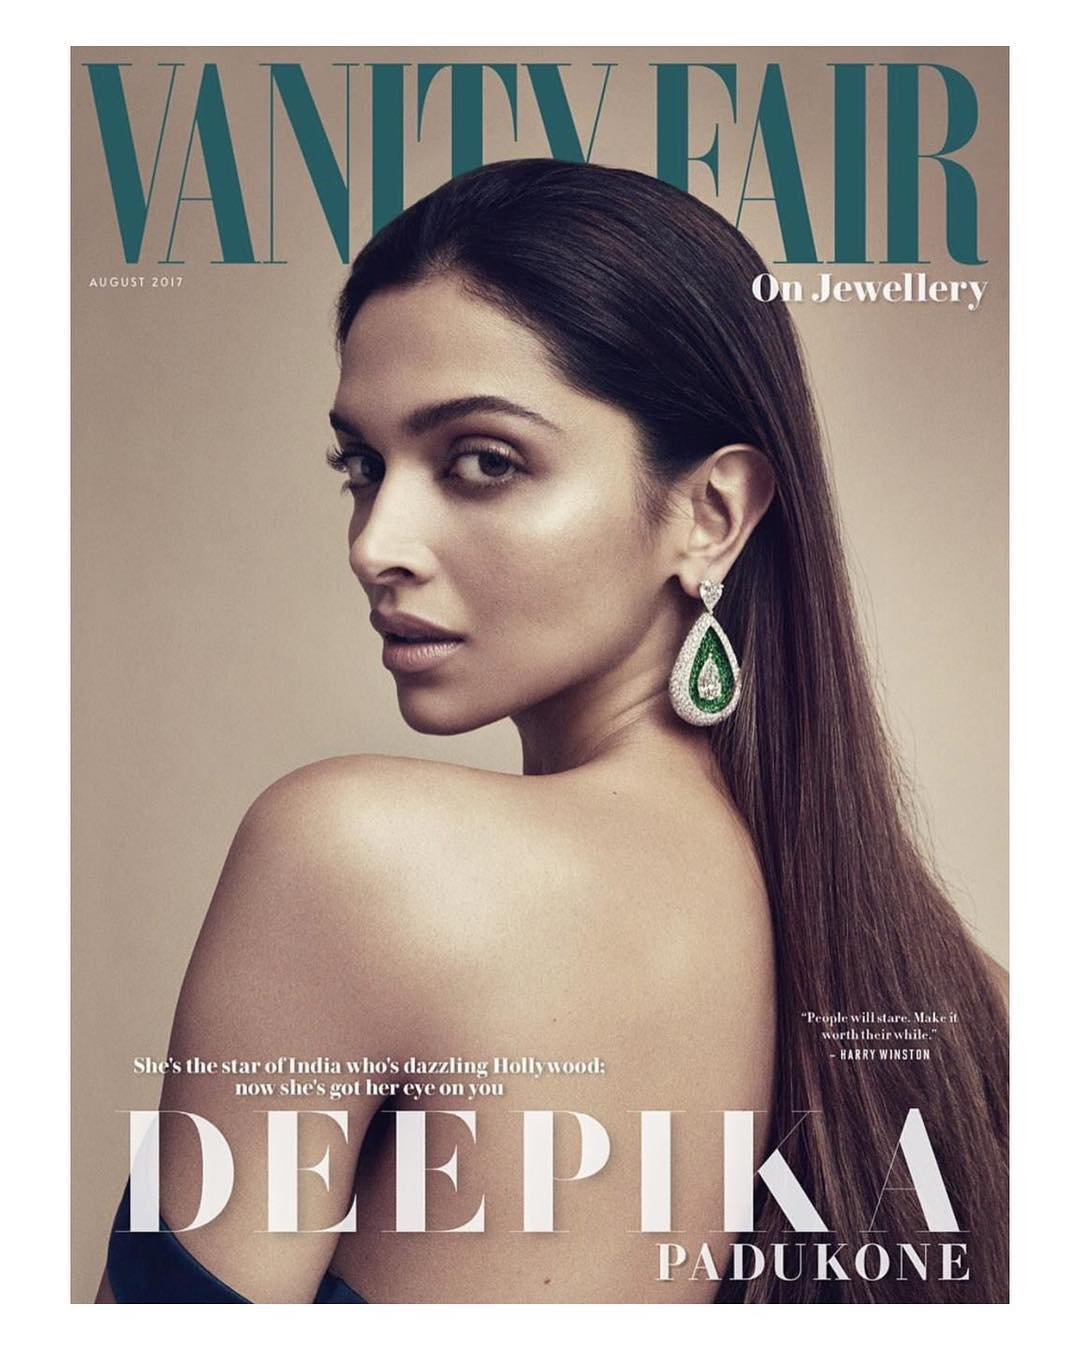 Deepika Padukone Vanity Fair magazine cover August 2017